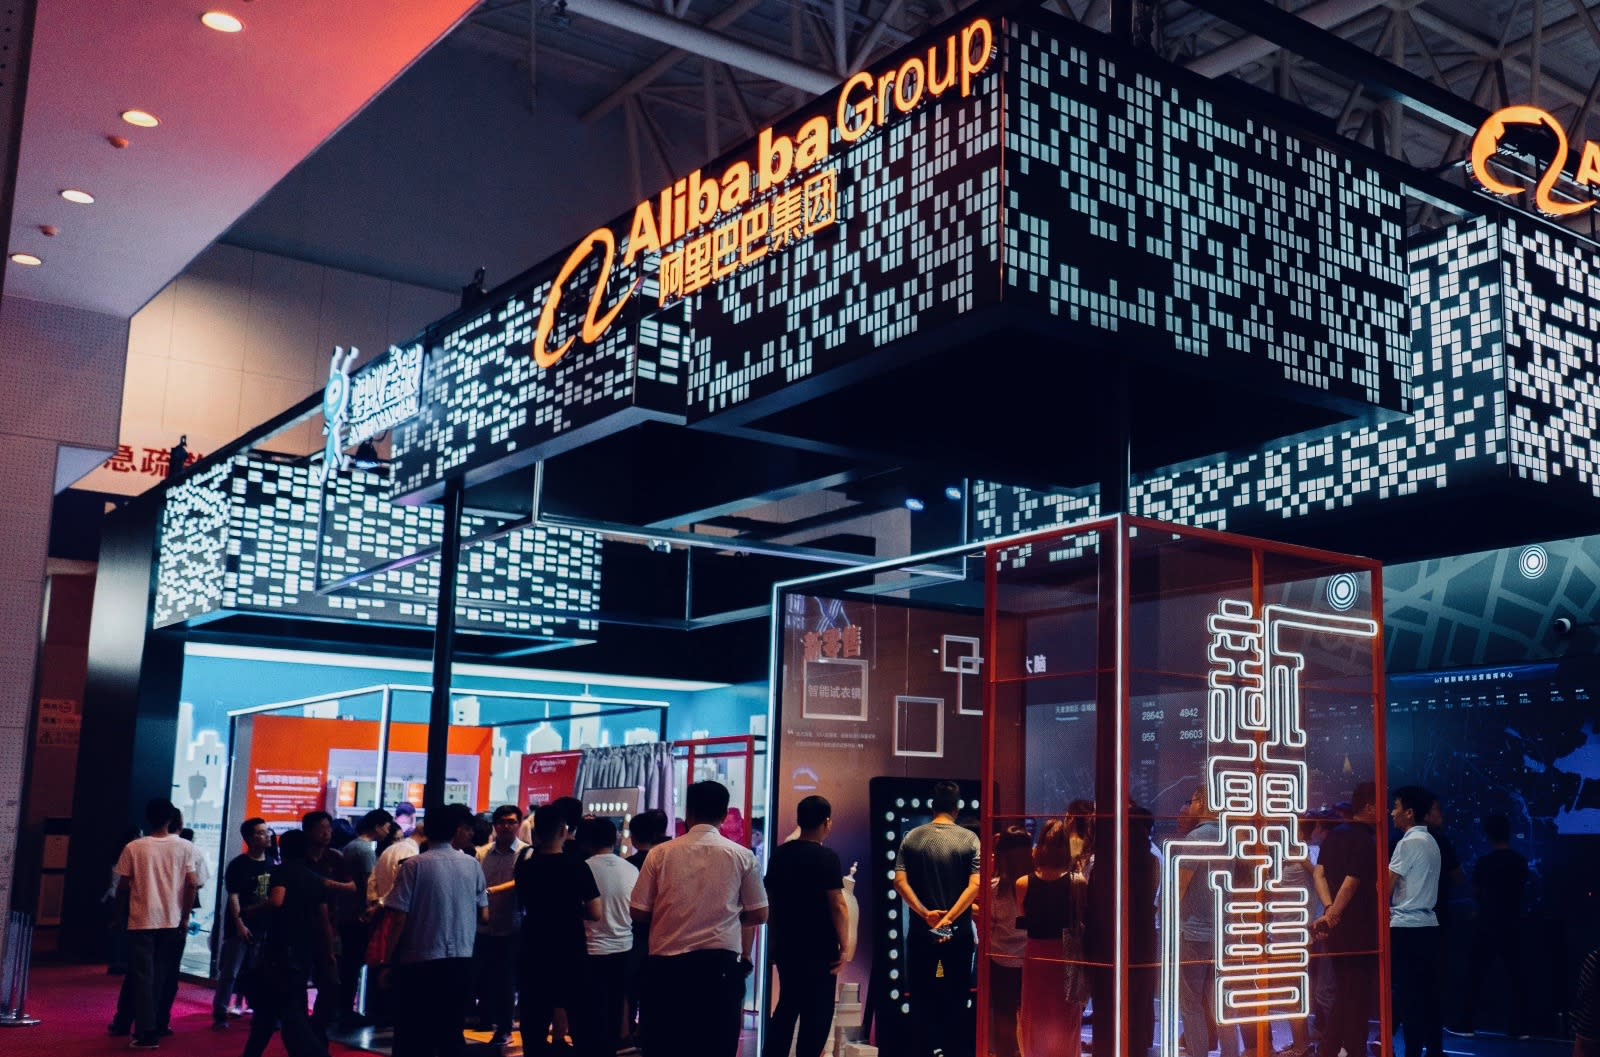 TIANJIN, CHINA - 2018/05/18: Alibaba shows its smart technology in e-commerce to the visitors. The 2nd World Intelligence Congress was held in Tianjin Meijiang Exhibition Center from May 16-18, 2018. (Photo by Zhang Peng/LightRocket via Getty Images)